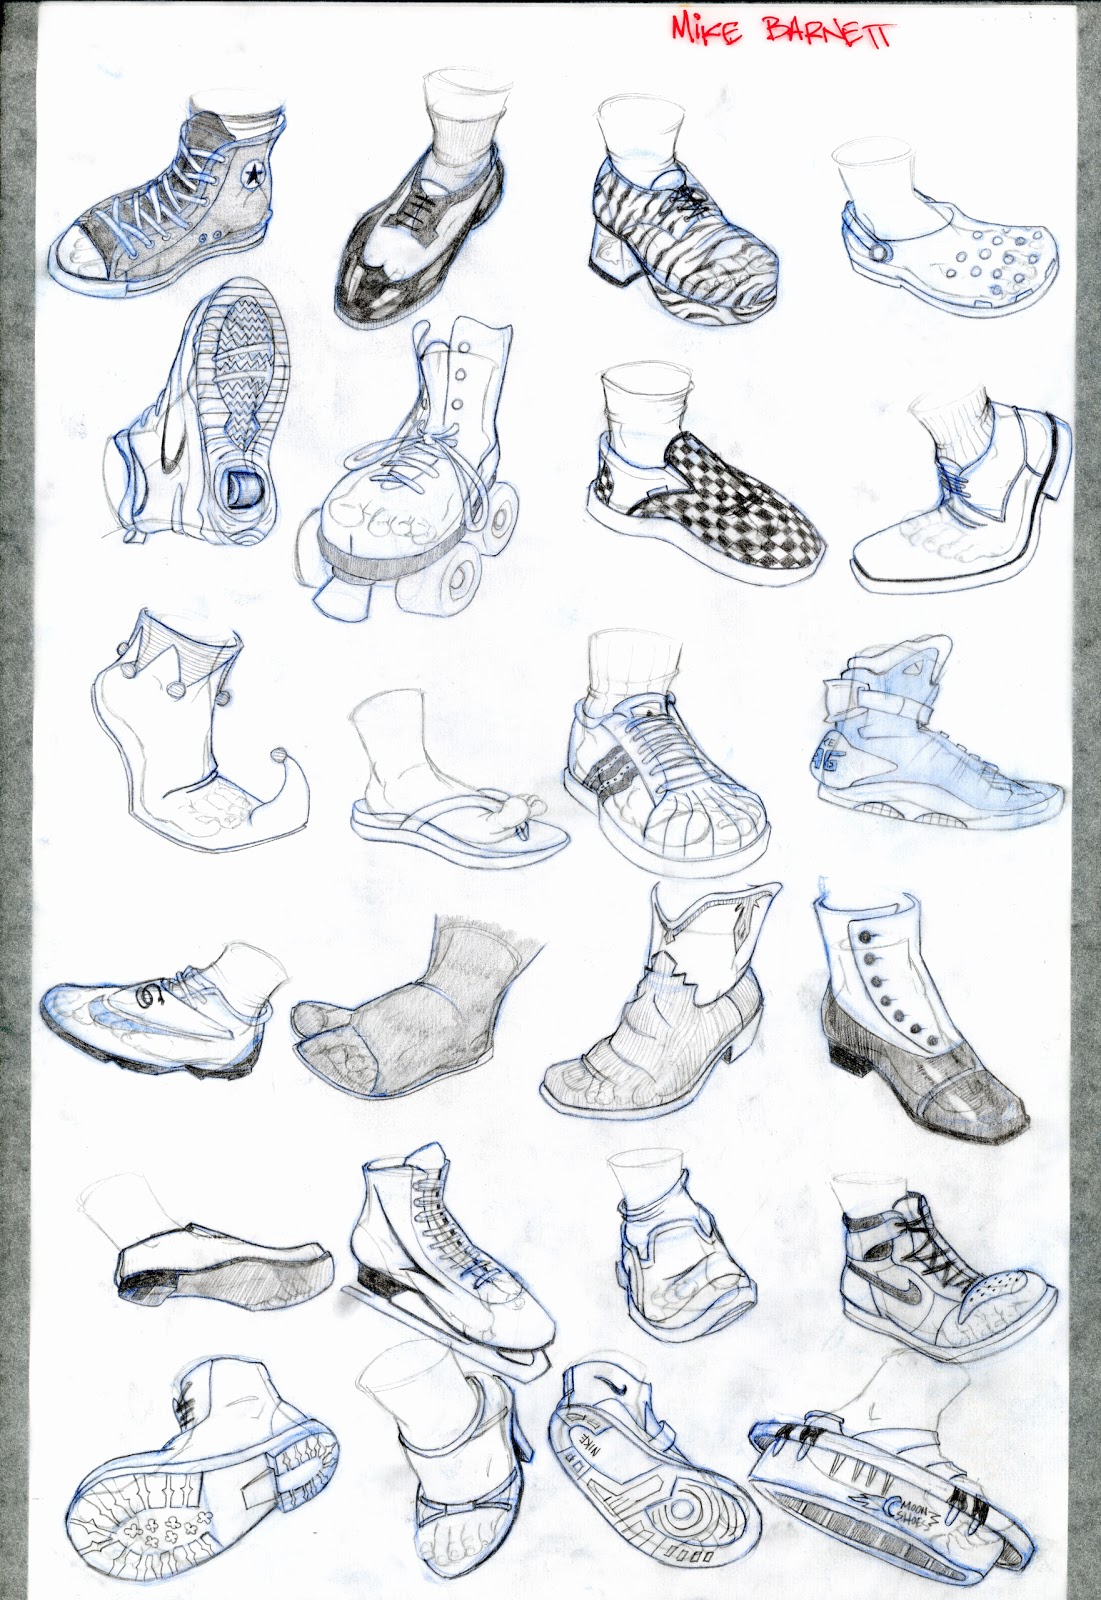 How To Draw Shoes On A Person : shoes, person, Shoes, Facing, Forward, Learn